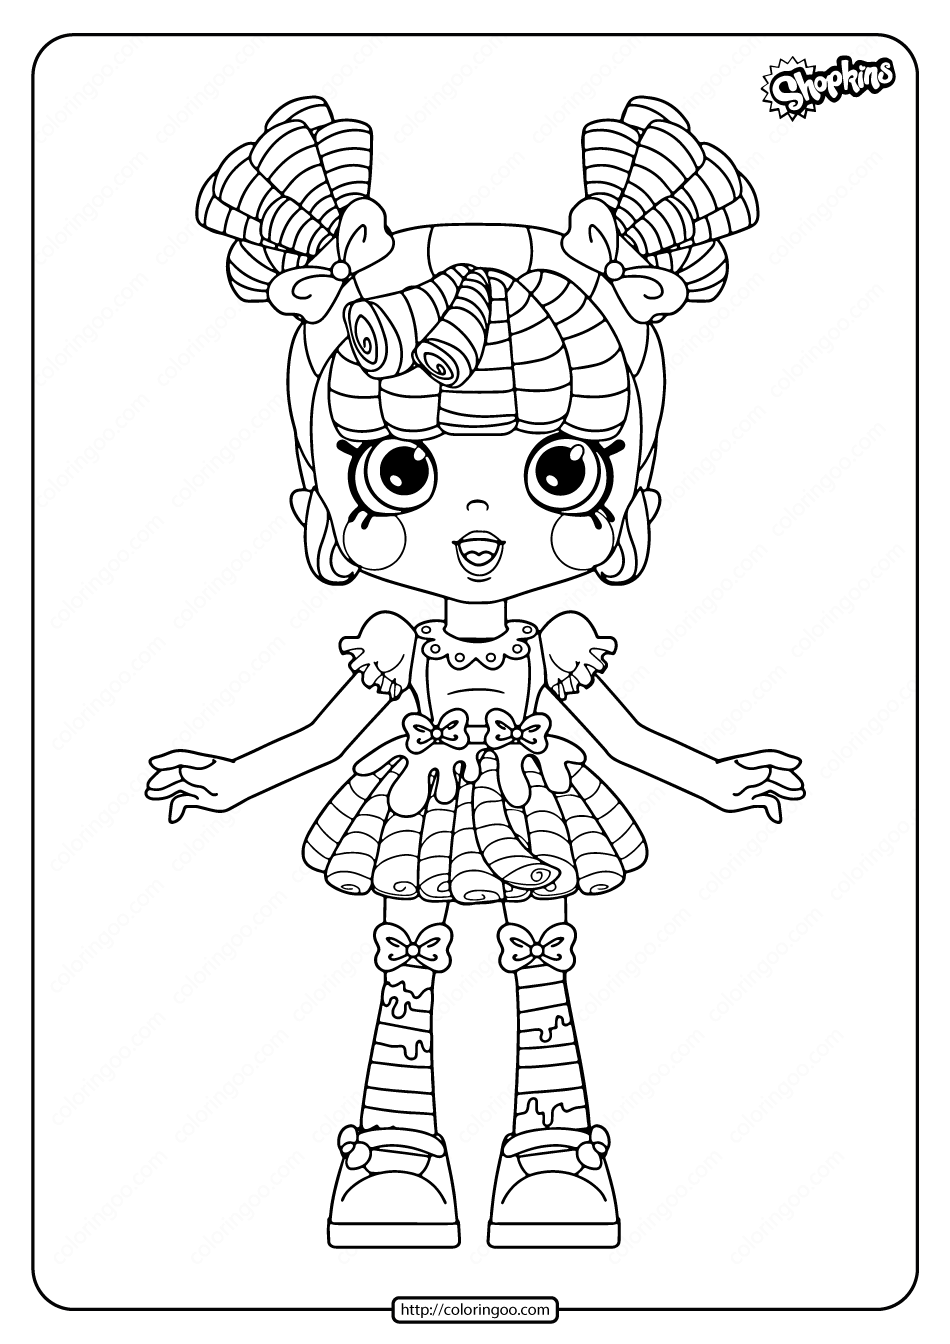 Printable Shopkins Milly Mops Coloring Pages